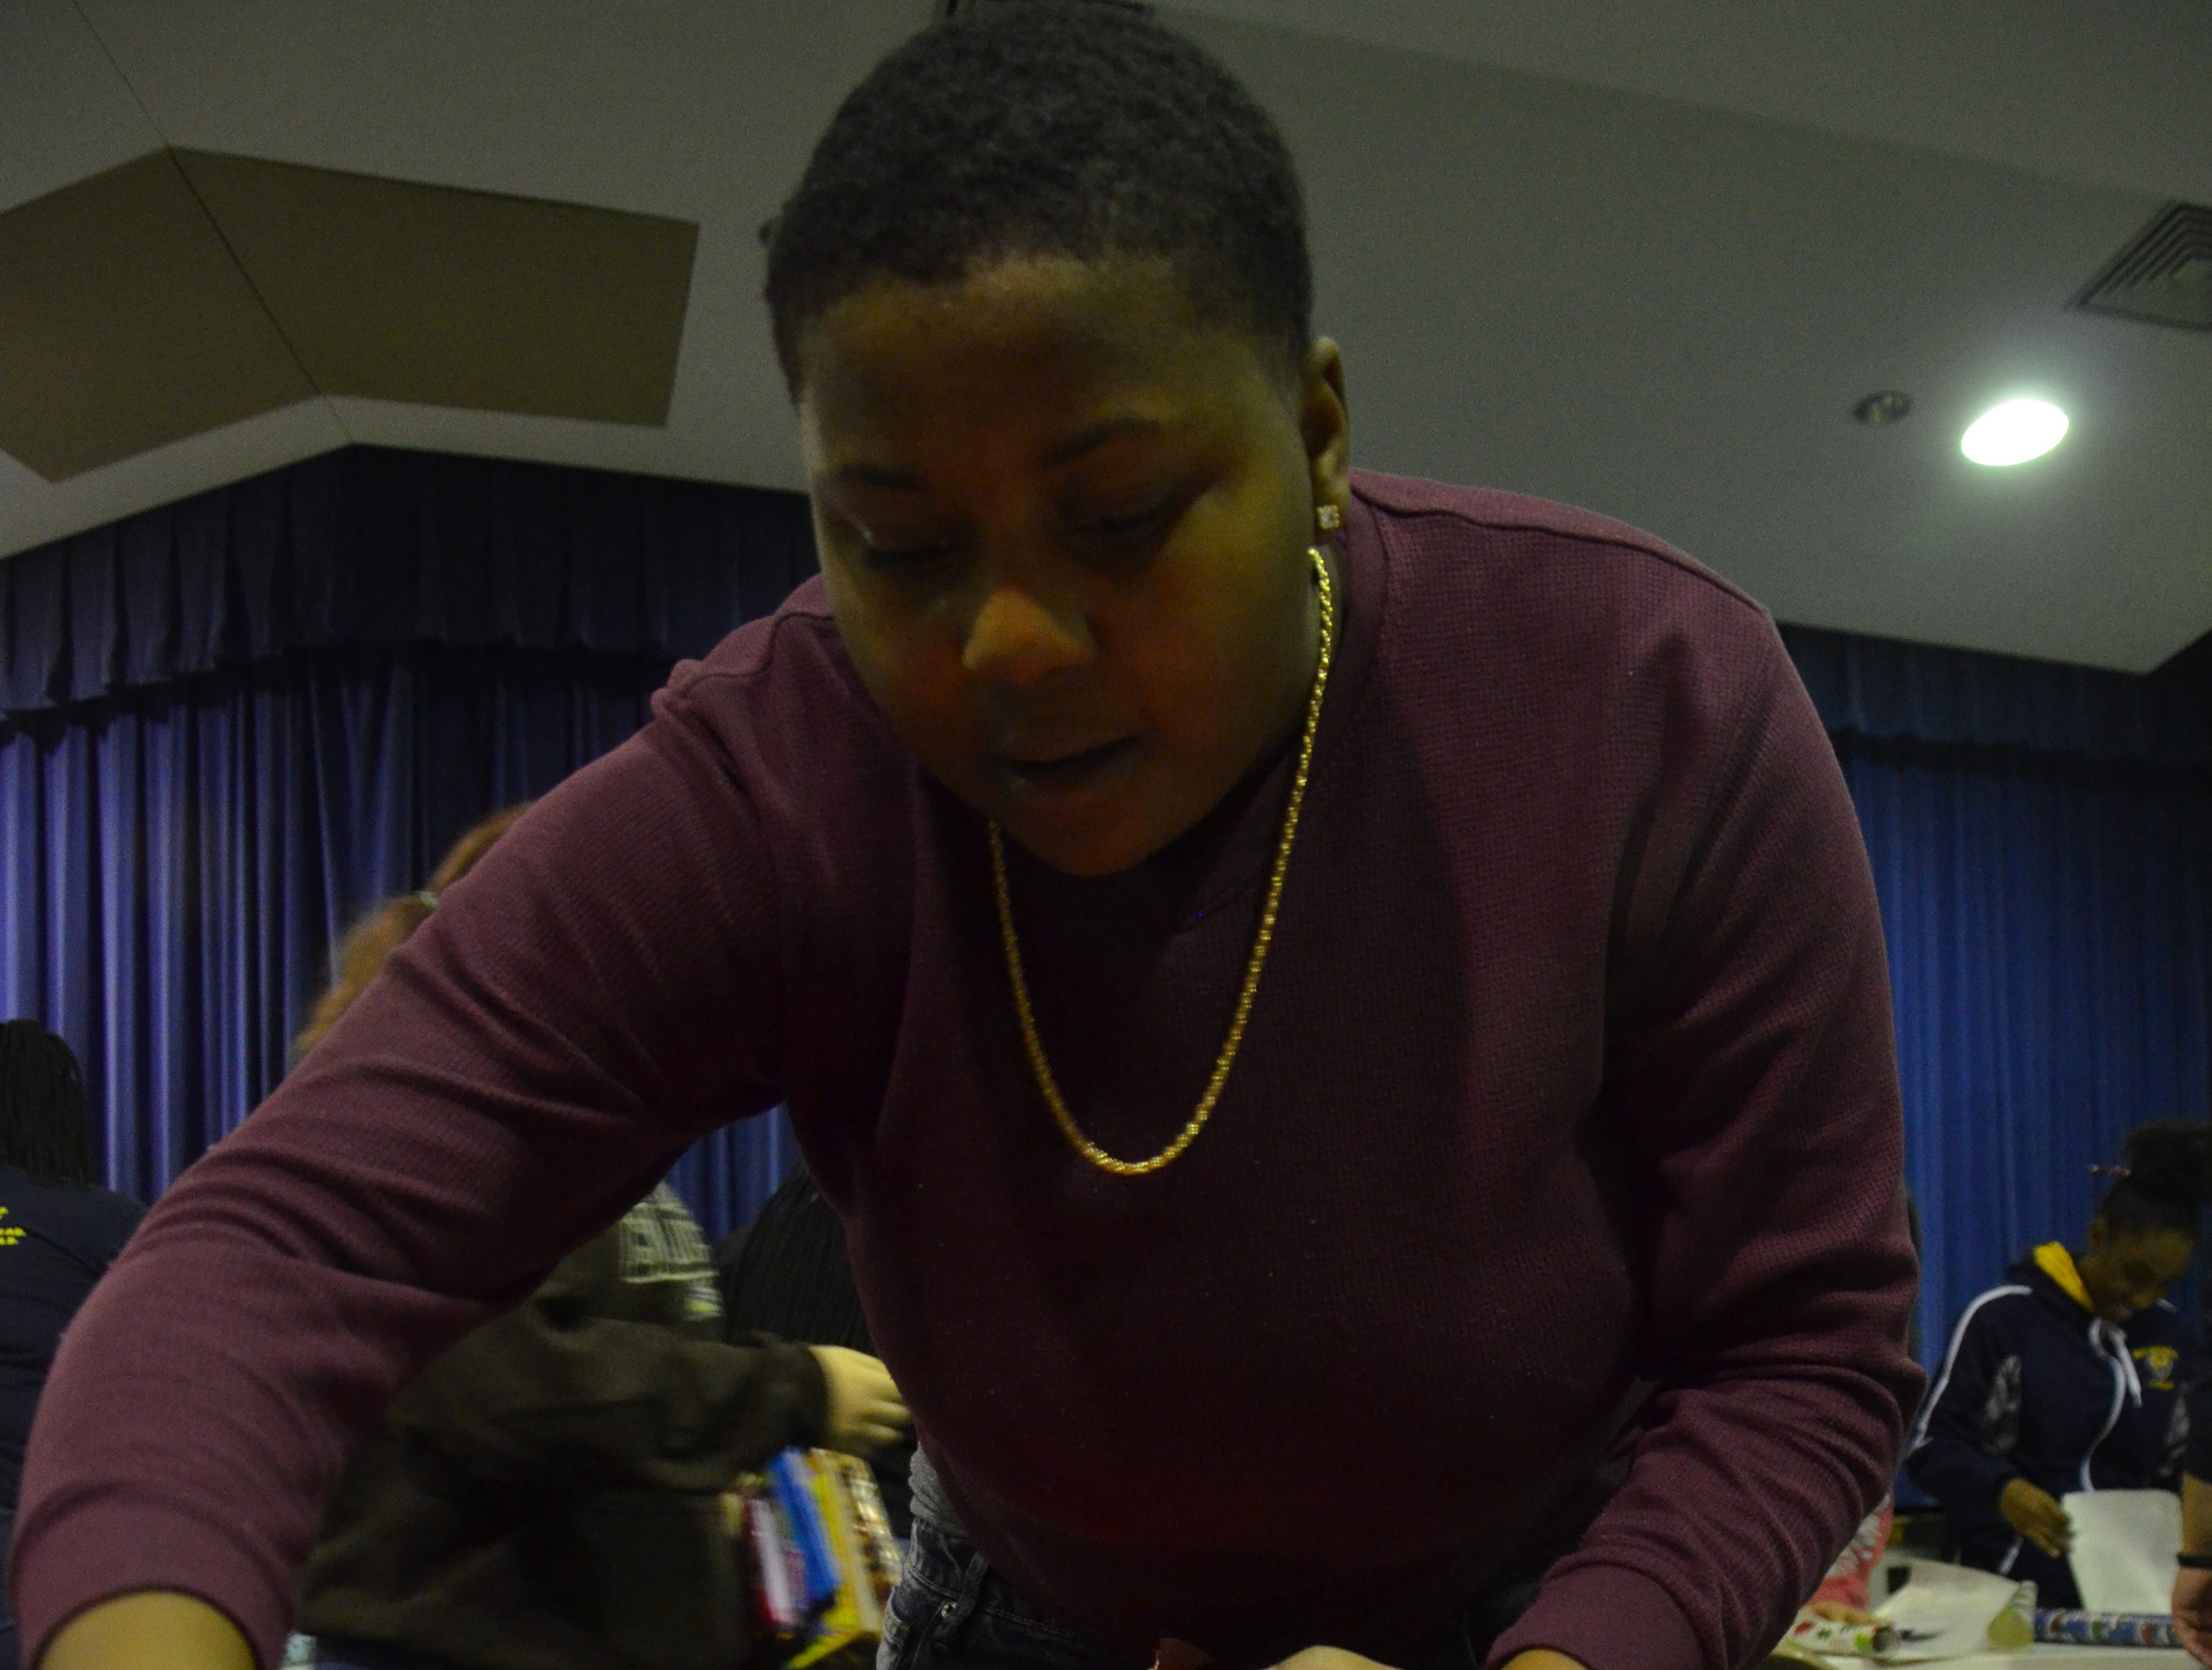 Julionna Hoover, 12th grade, cuts paper to wrap a present on Friday at Battle Creek Central High School.